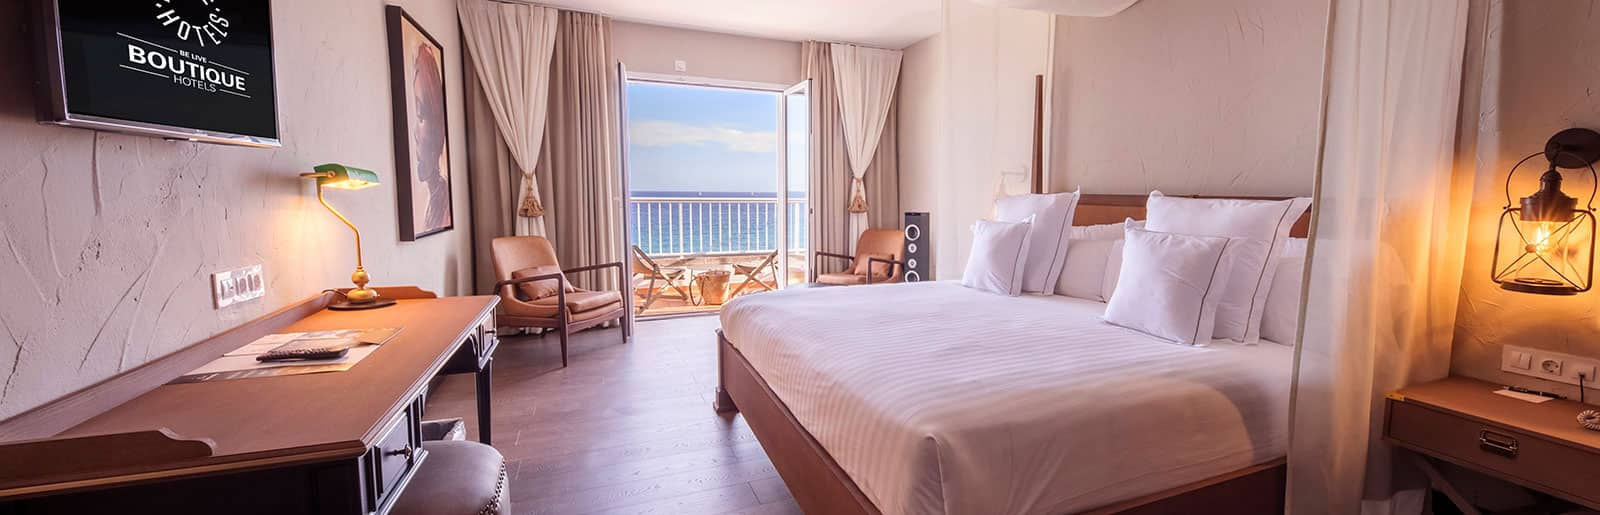 Junior Suite Vista Mar, Be Live Adults Only La Cala hotel